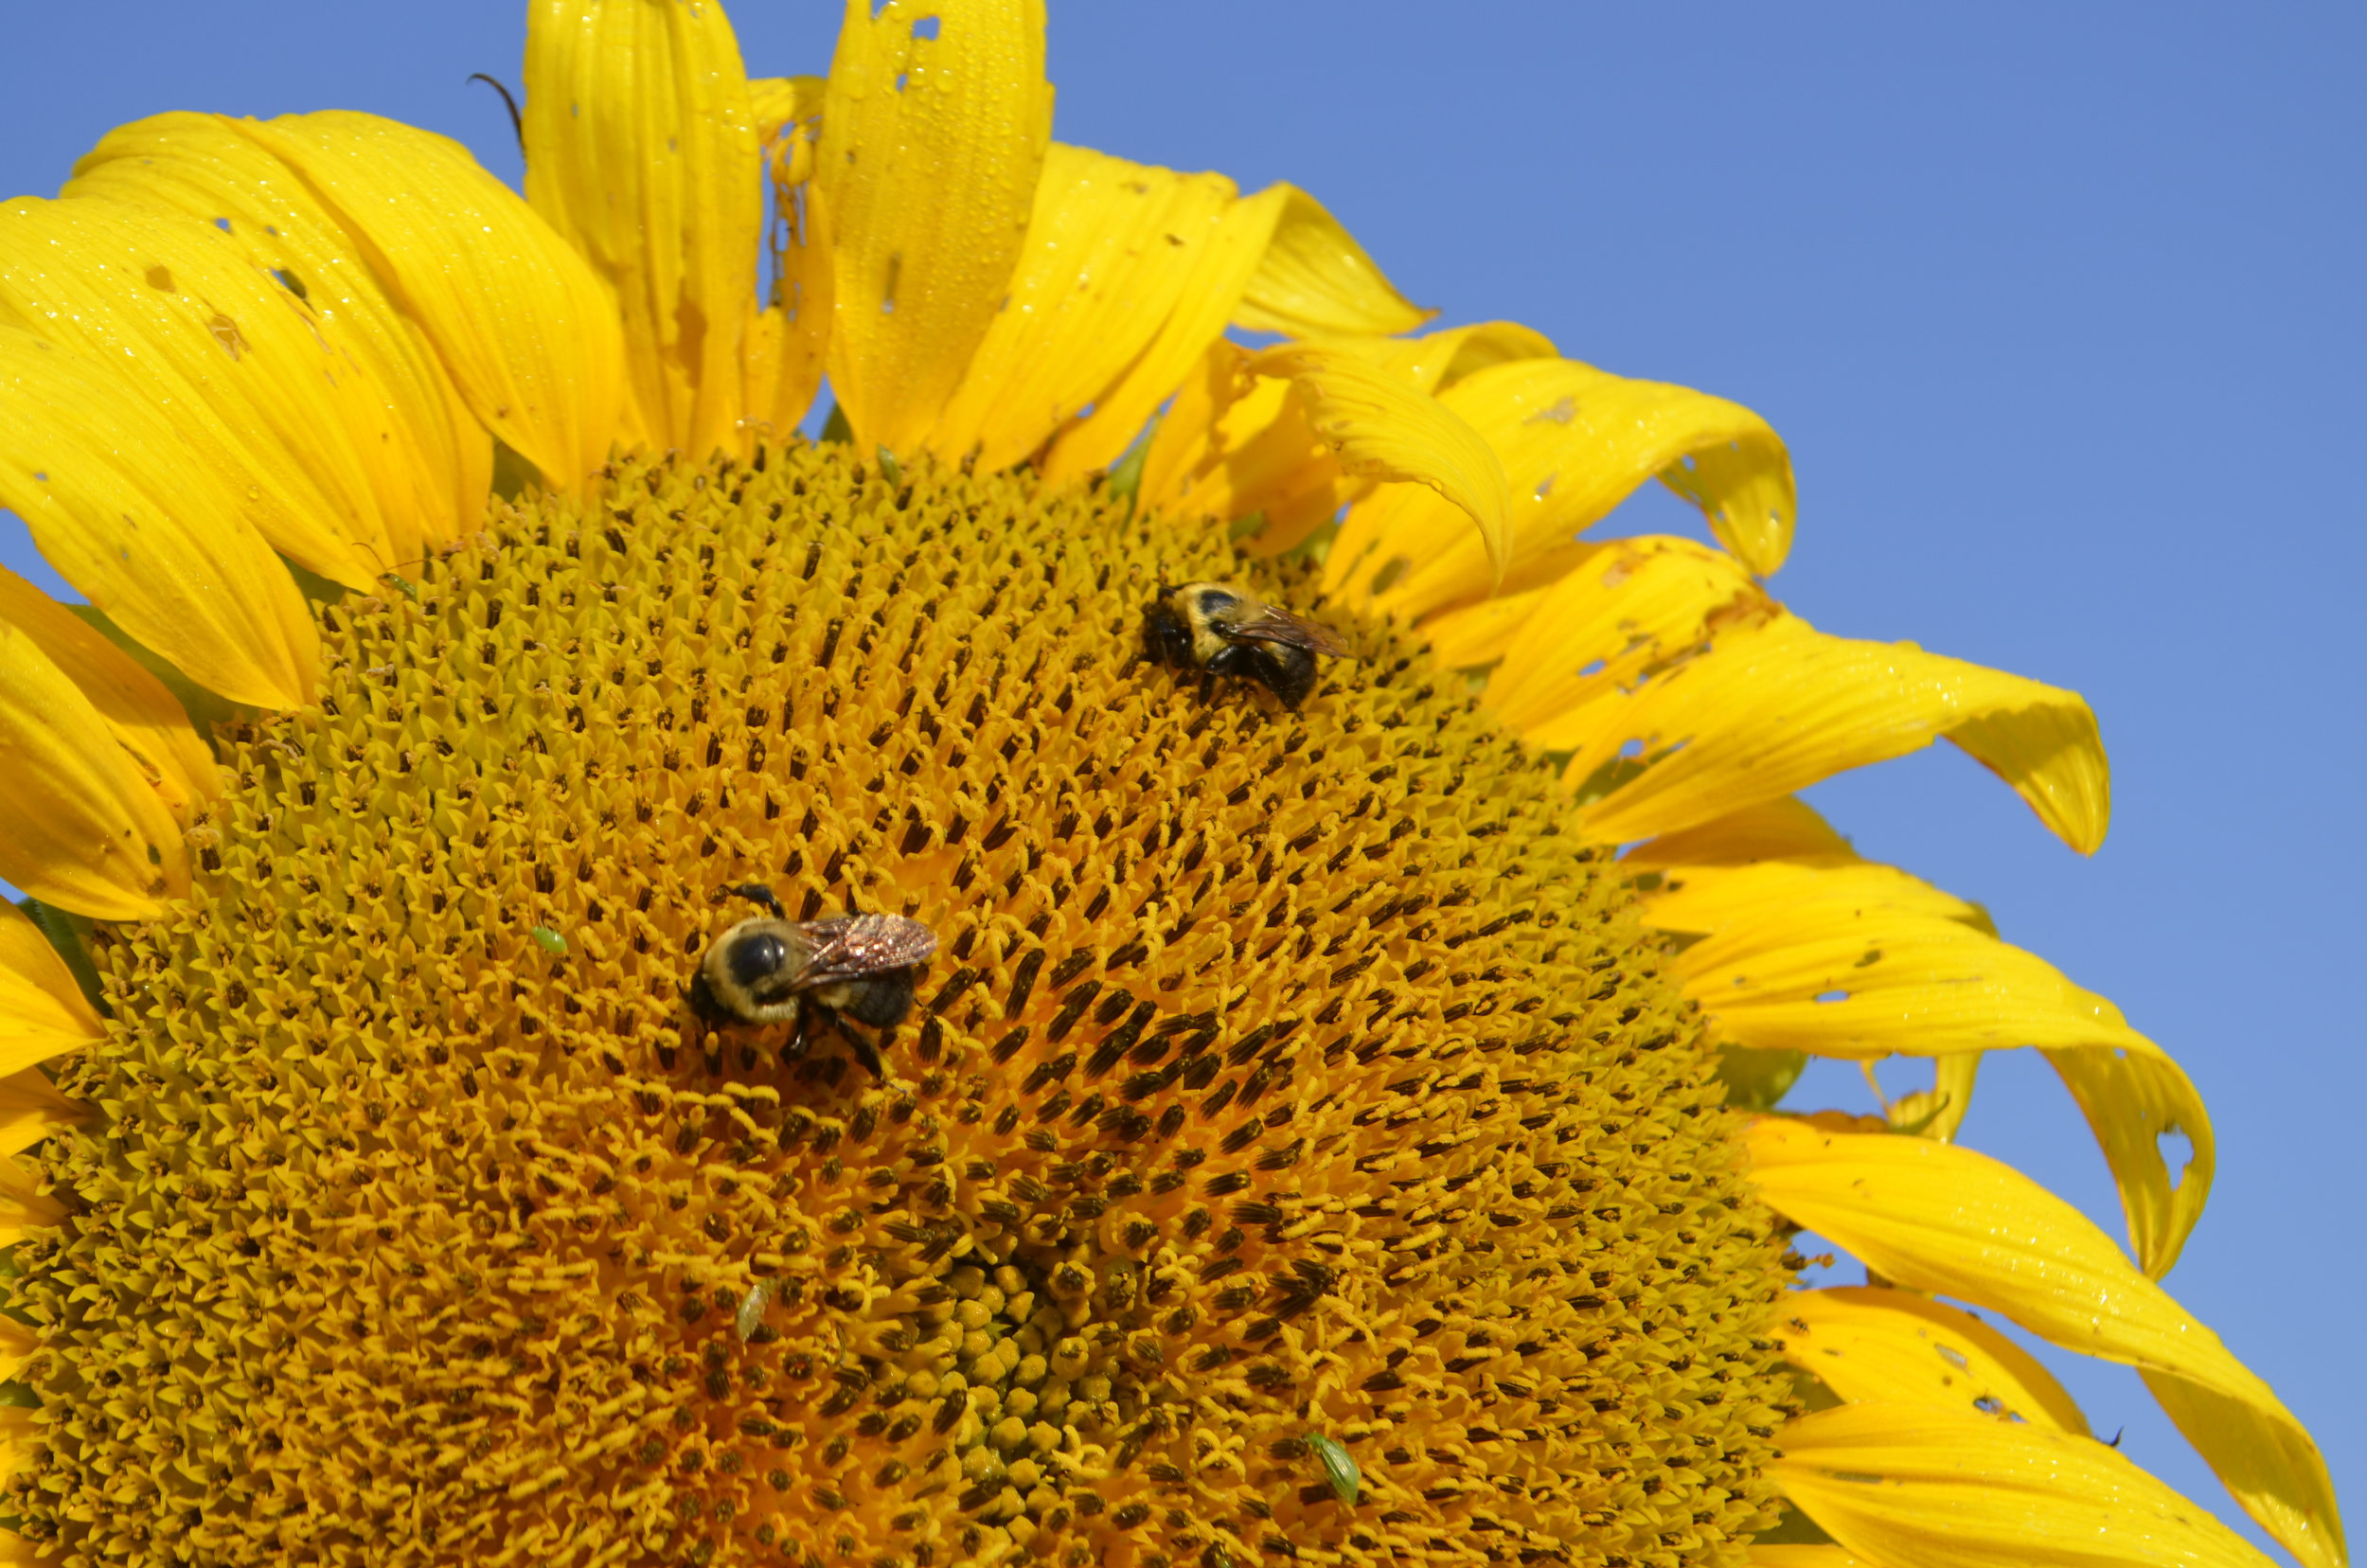 Sunflowers provide awesome fodder for pollinators. Photo by Mark Martin